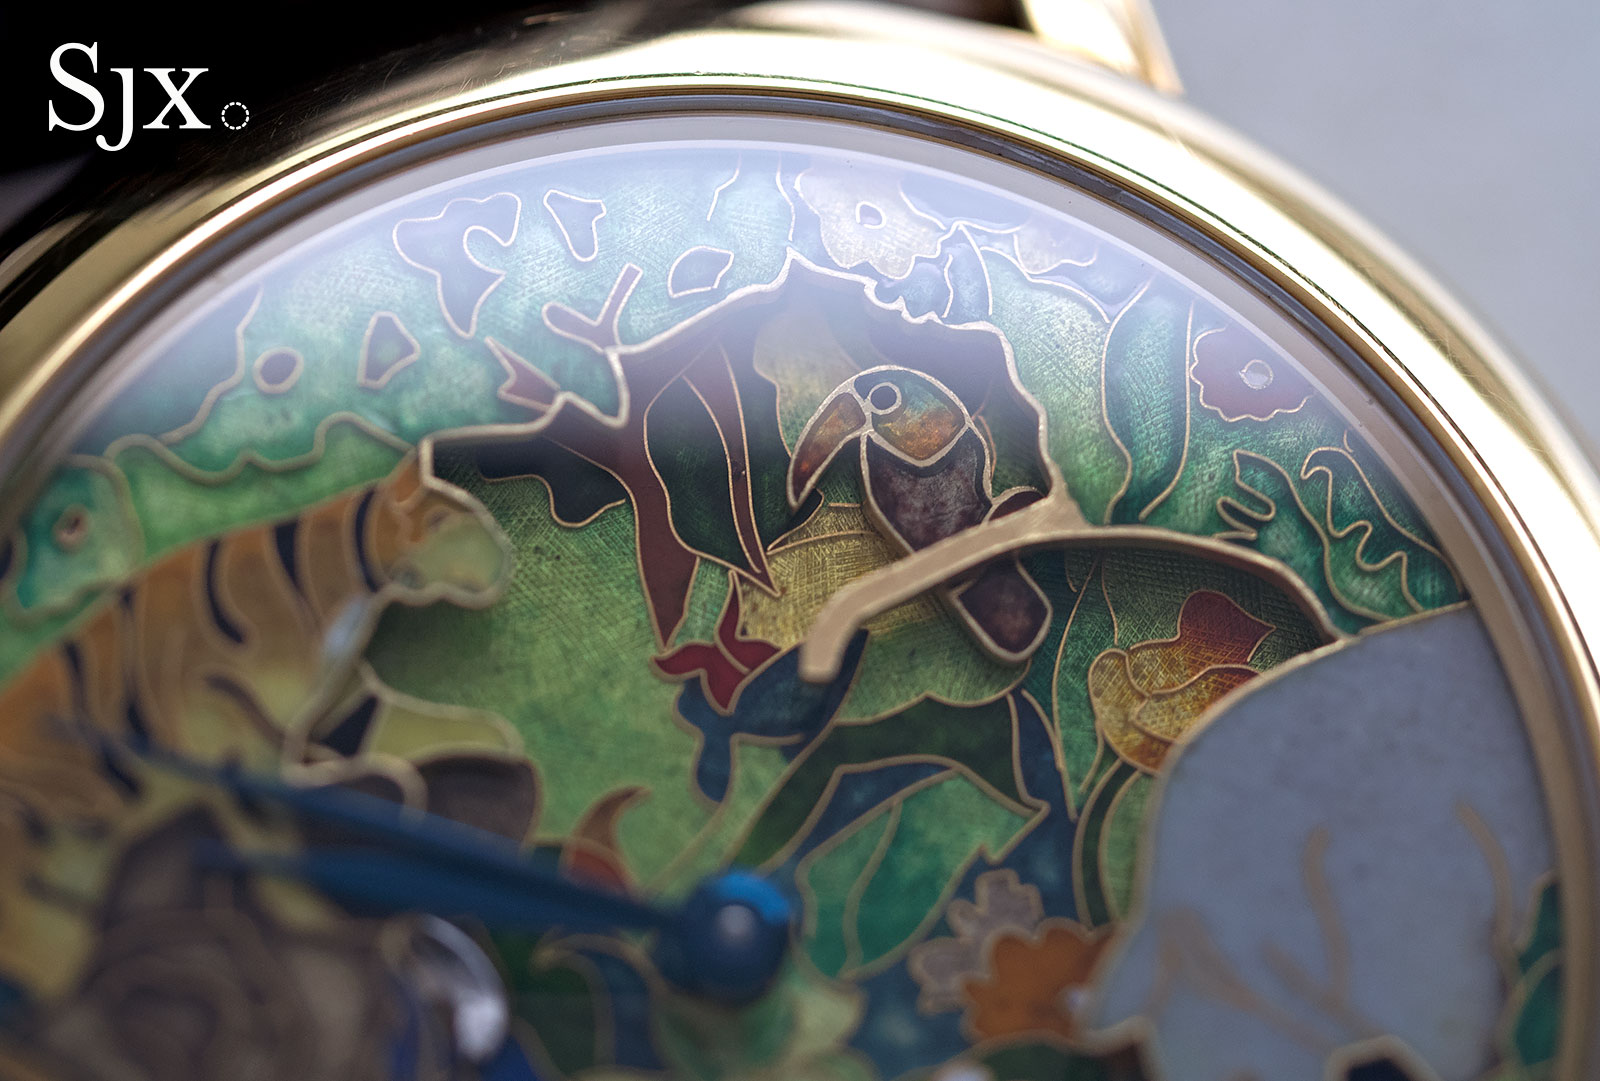 Ulysse Nardin Jungle Minute Repeater 4